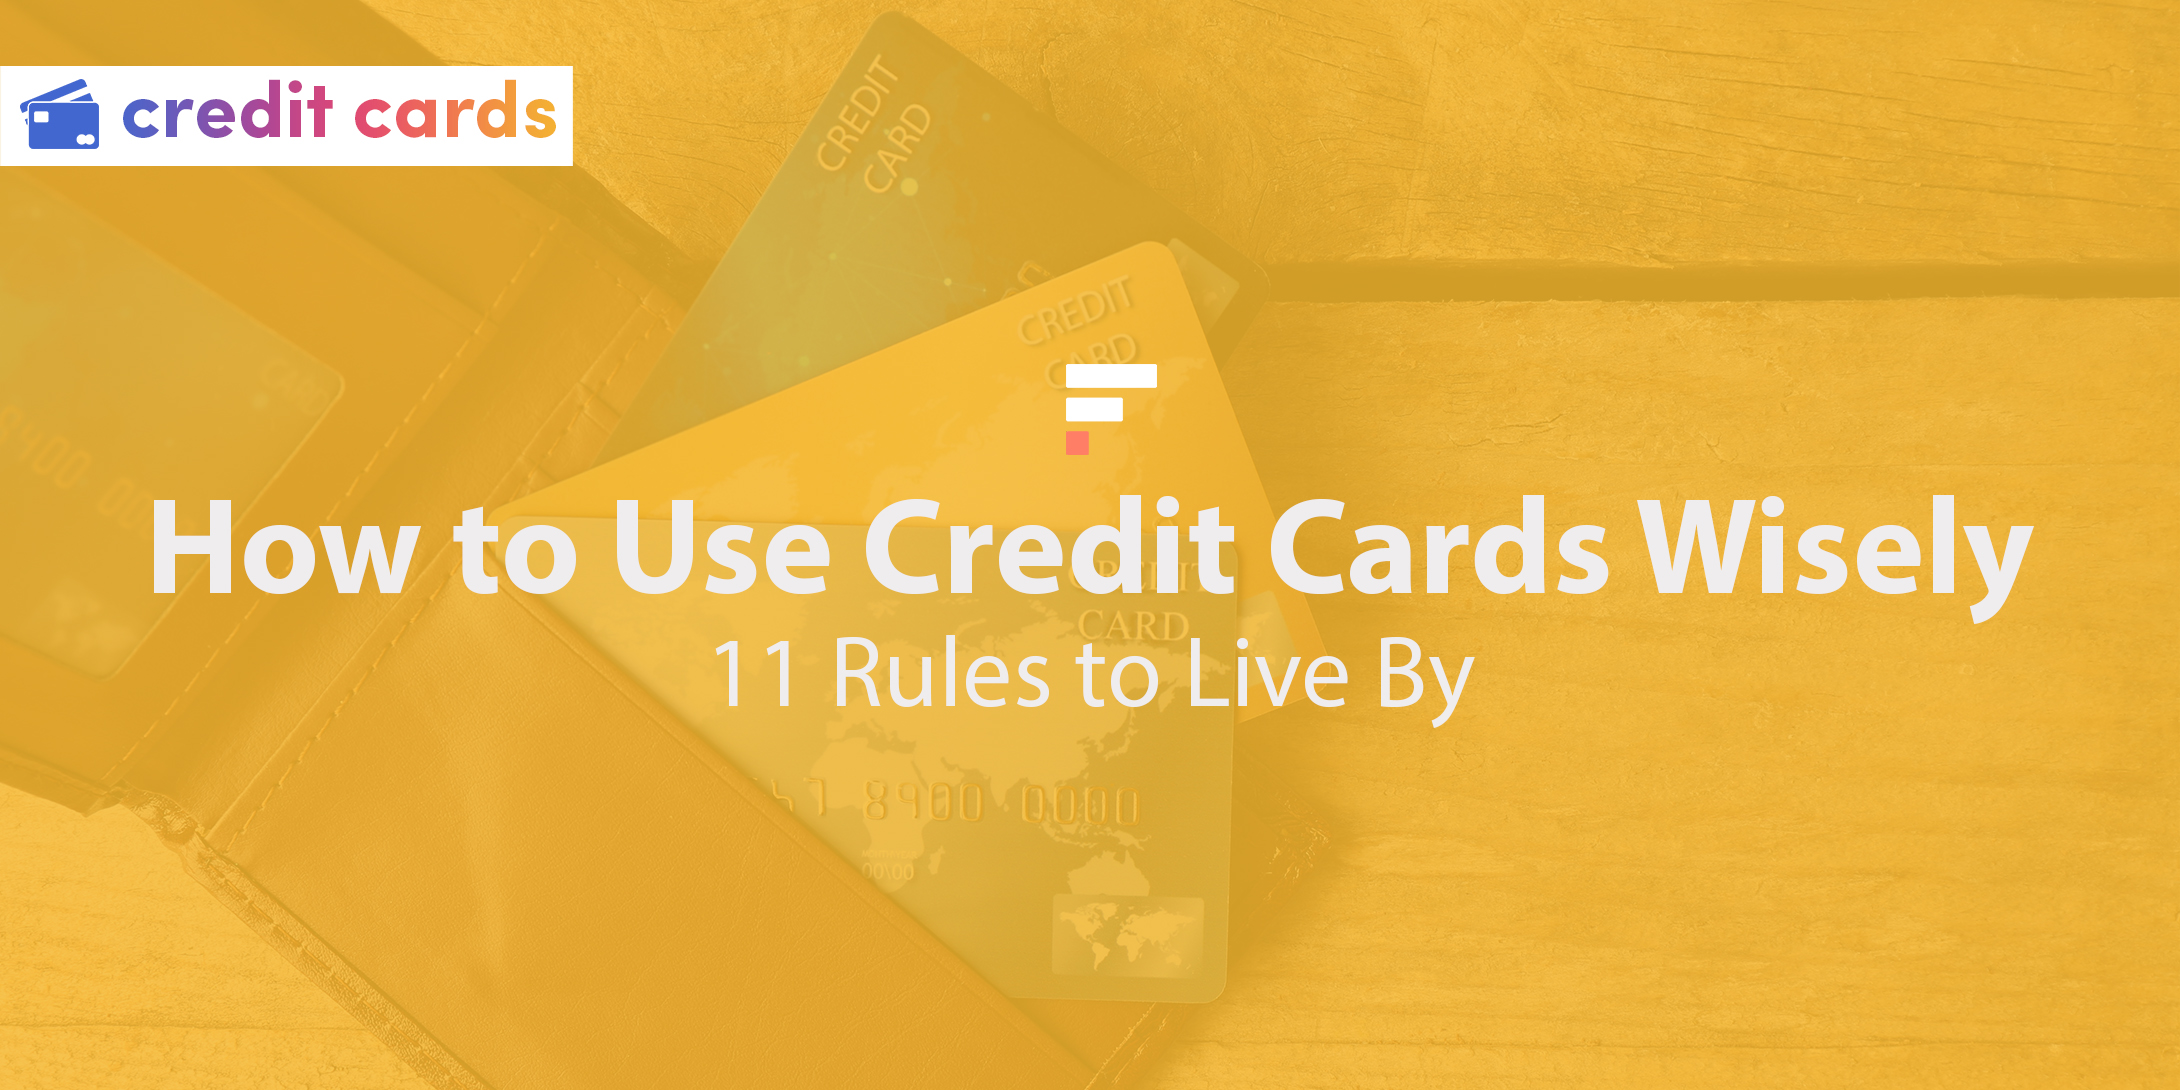 How to Use Credit Cards Wisely: 11 Rules to Live By